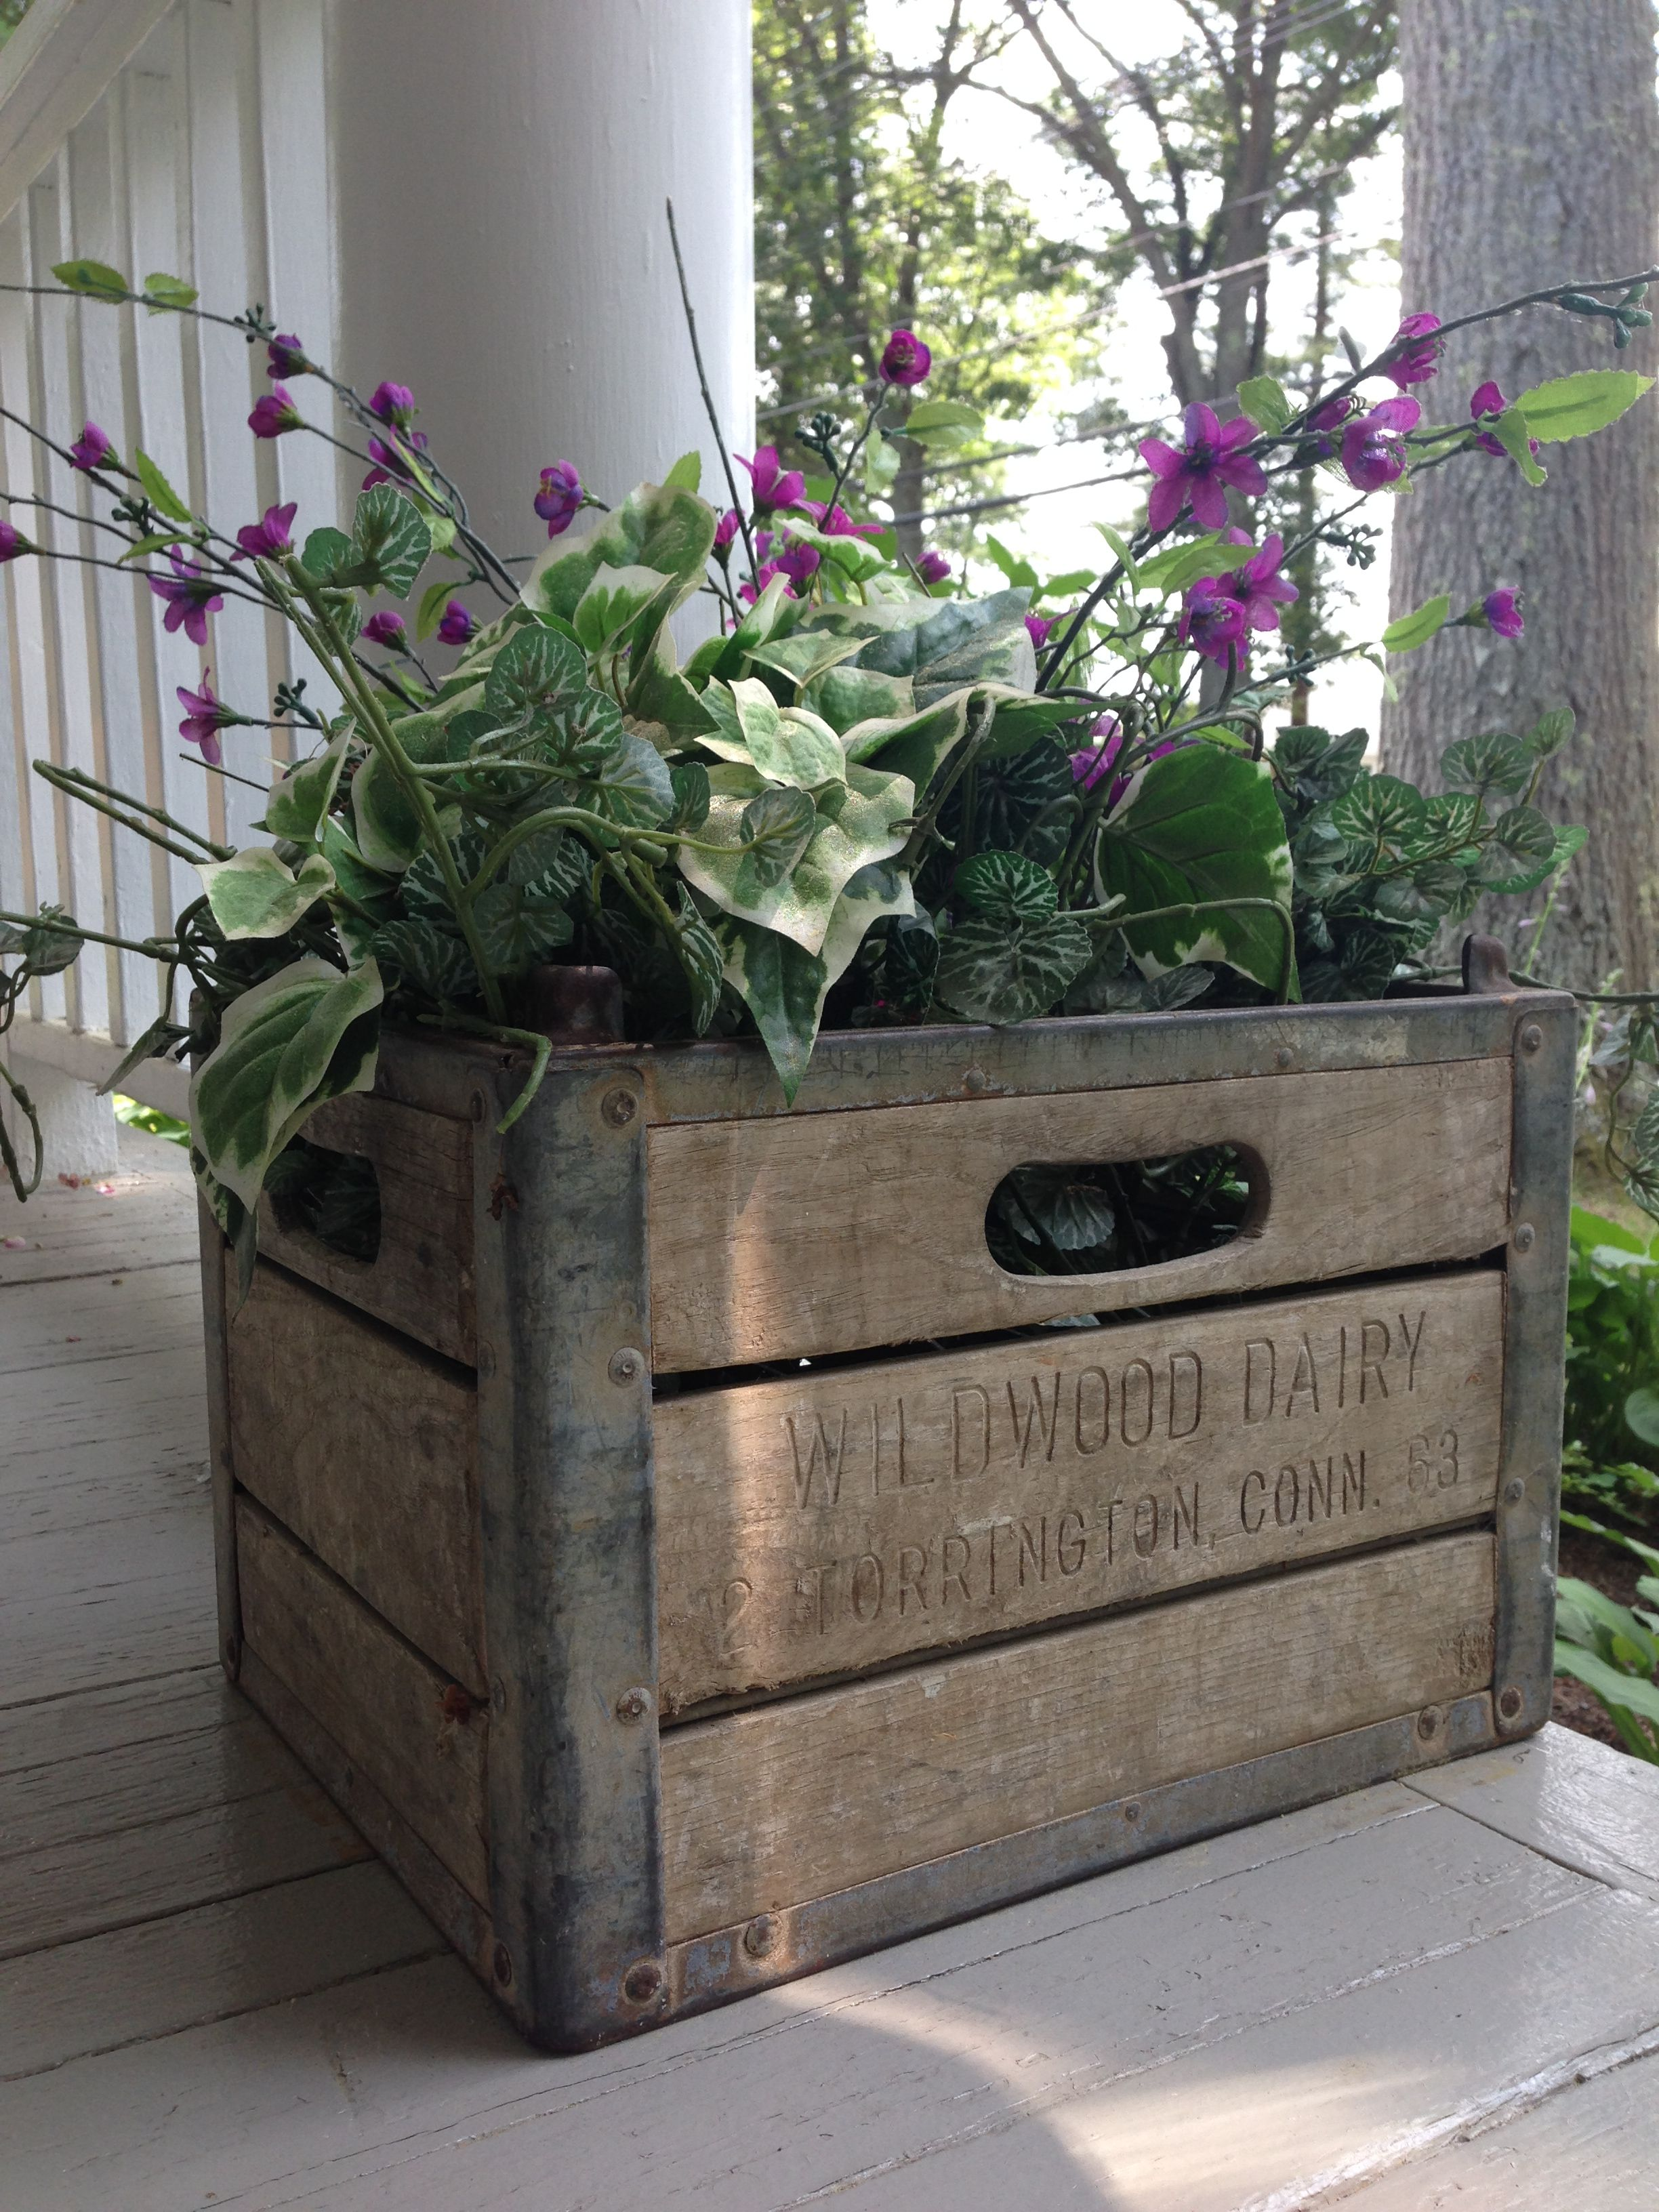 Vintage Wooden Milk Crate Becomes Porch Planter Compliments Of Wildwood Dairy Torrington Ct Crate Decor Milk Crates Wooden Crates Planters